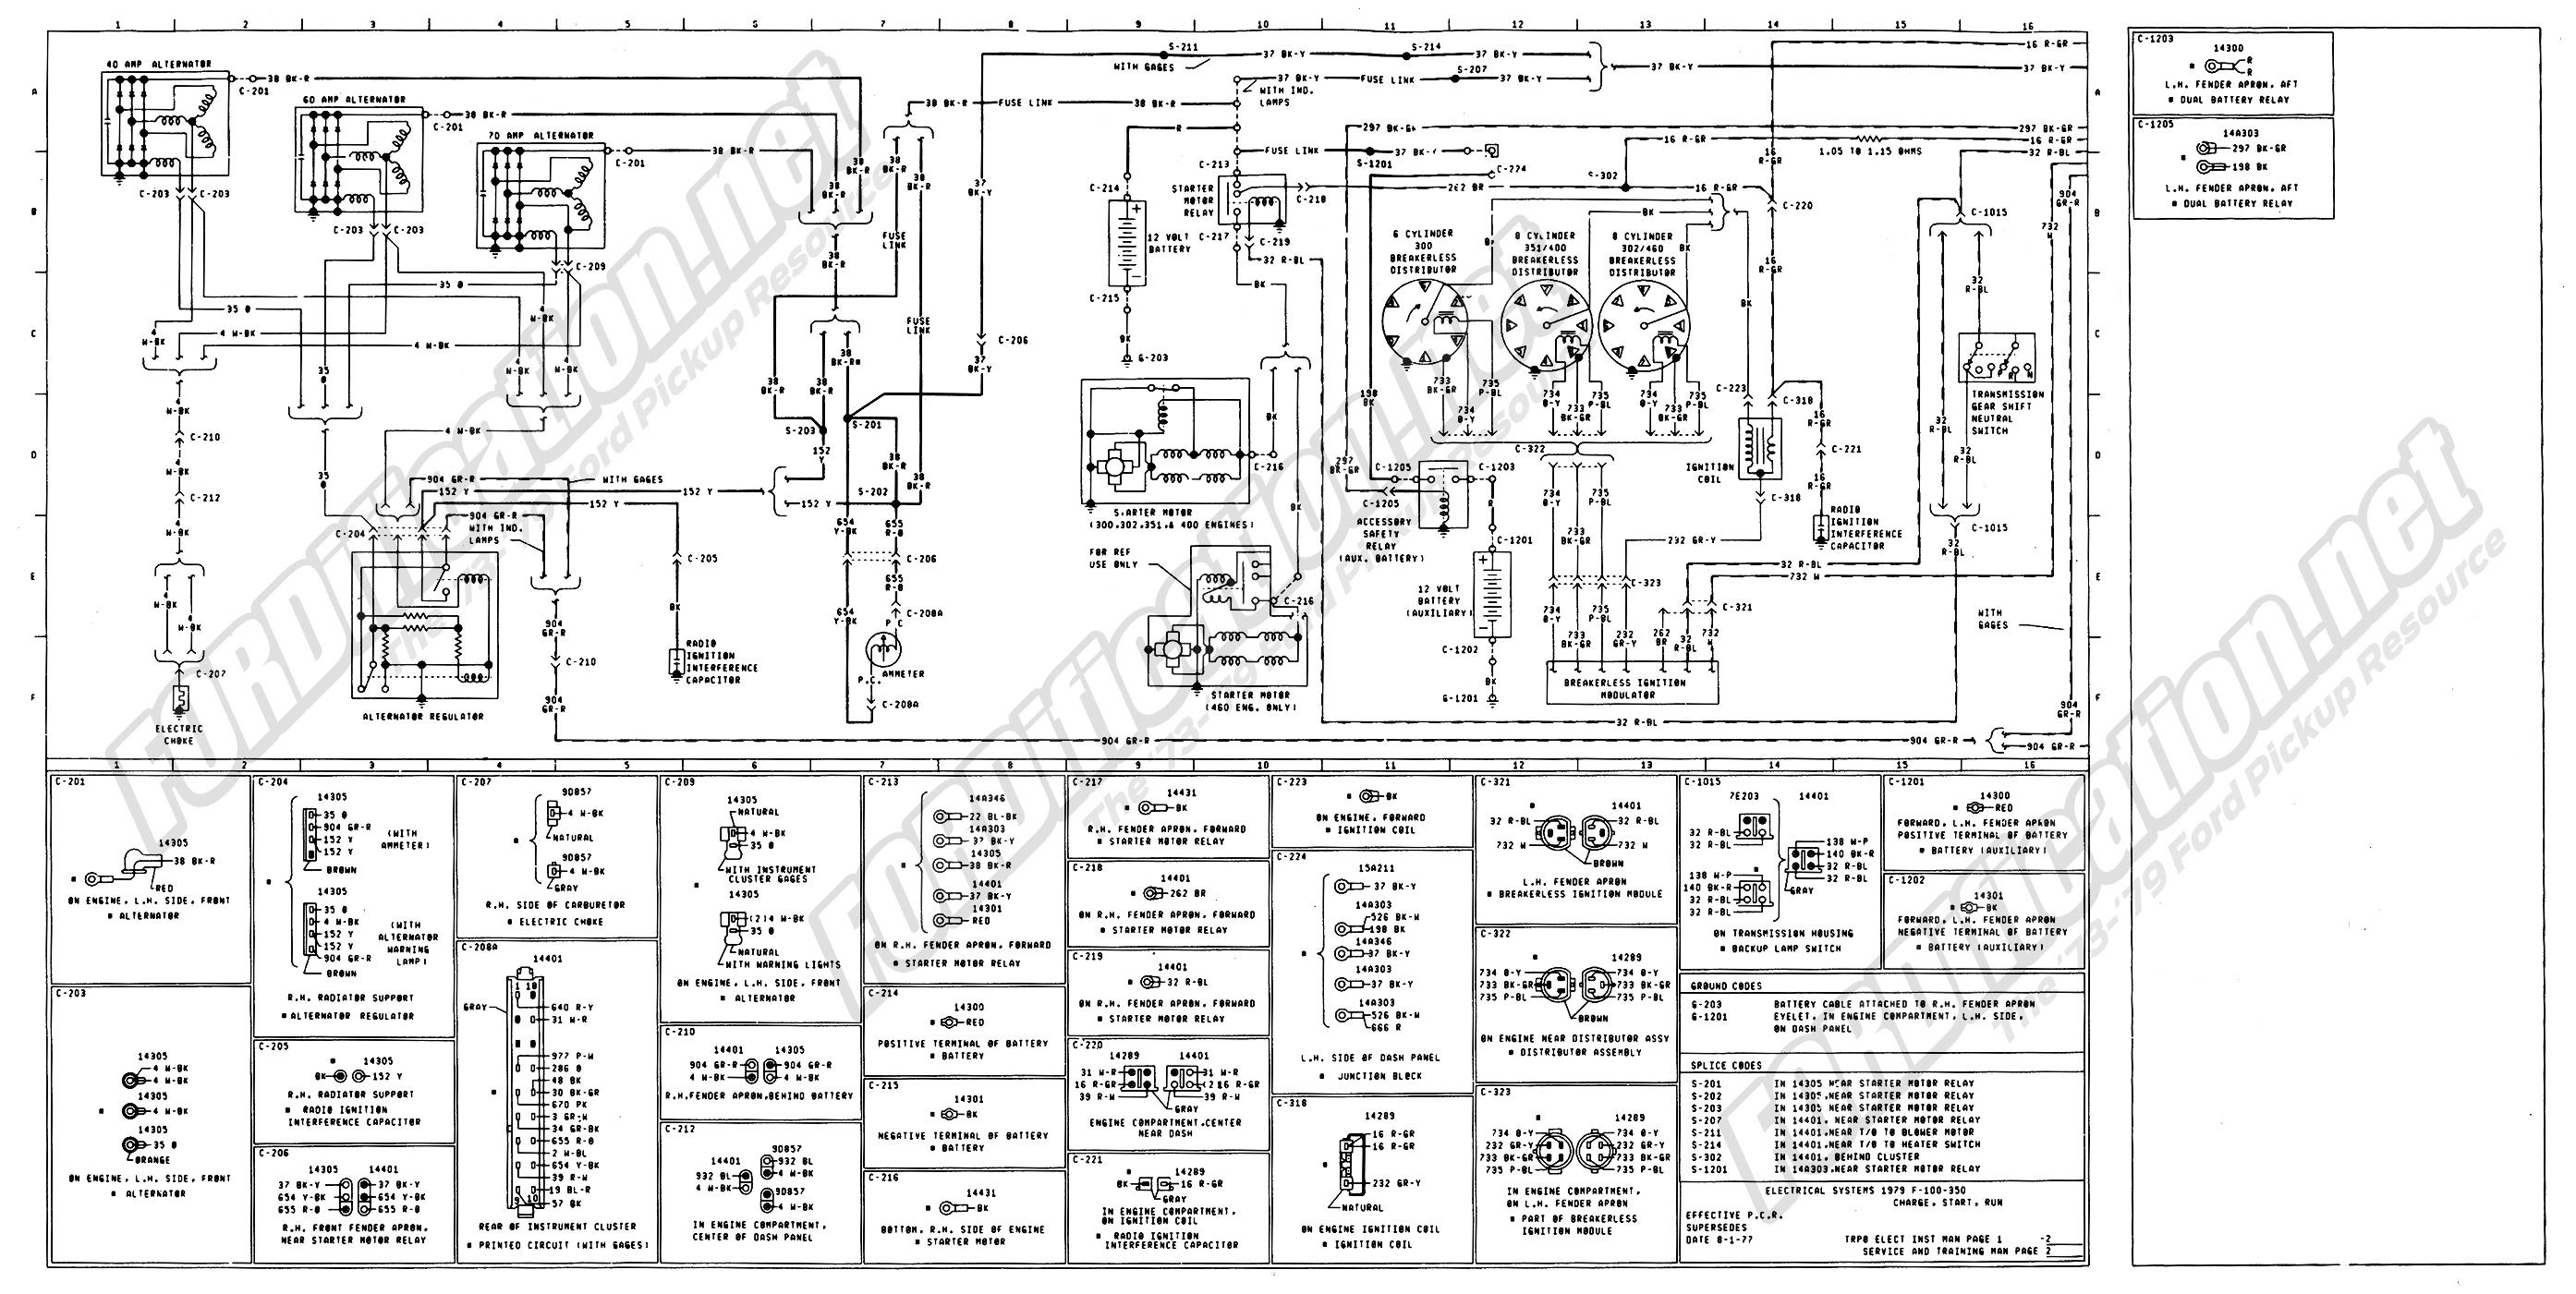 99 Sterling Truck Wiring Diagram 1973 1979 ford Truck Wiring Diagrams & Schematics fordification Of 99 Sterling Truck Wiring Diagram